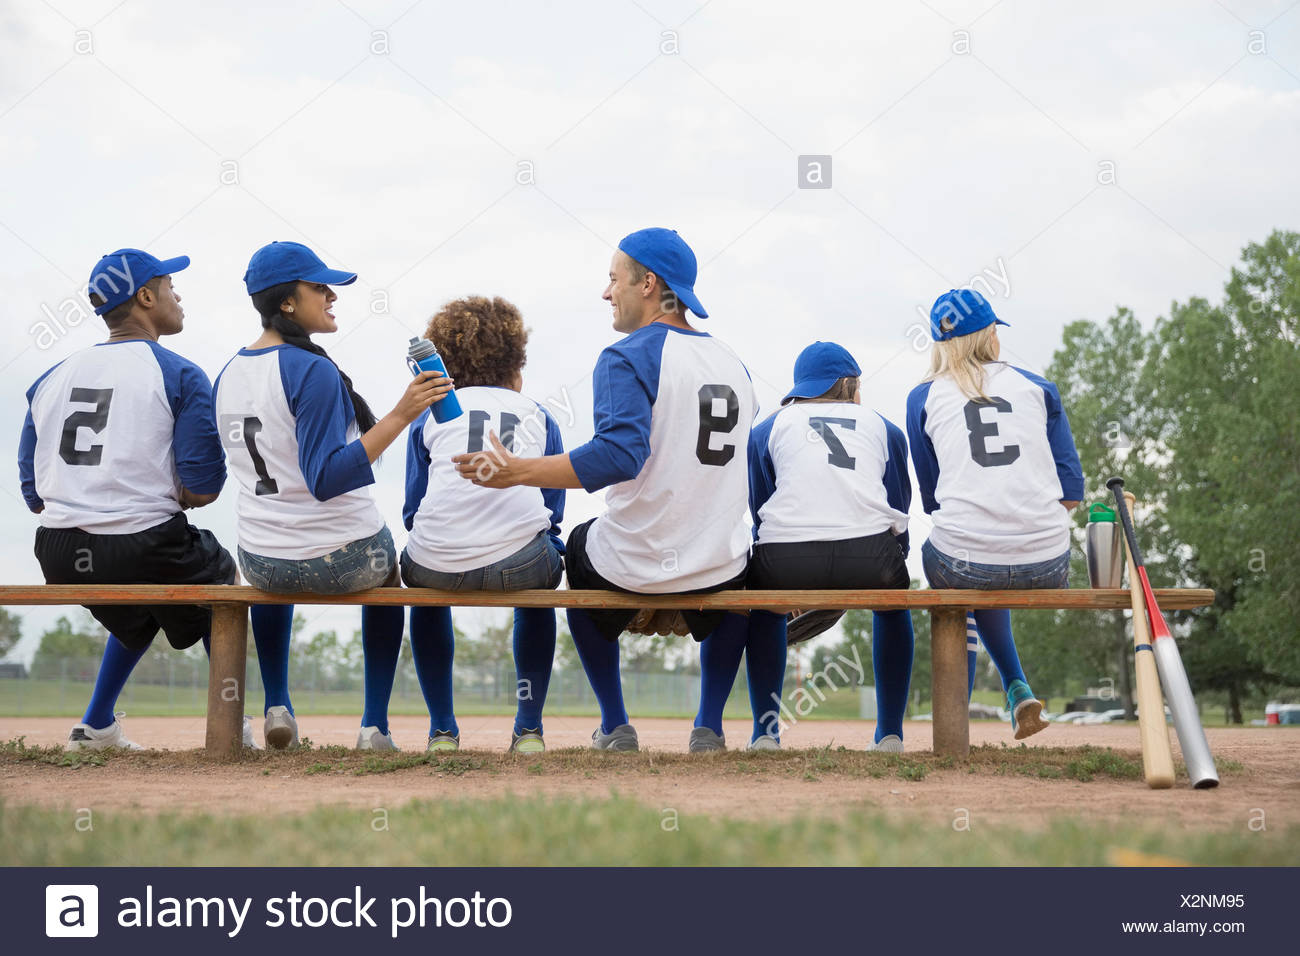 Baseball team sharing water on bench in field - Stock Image